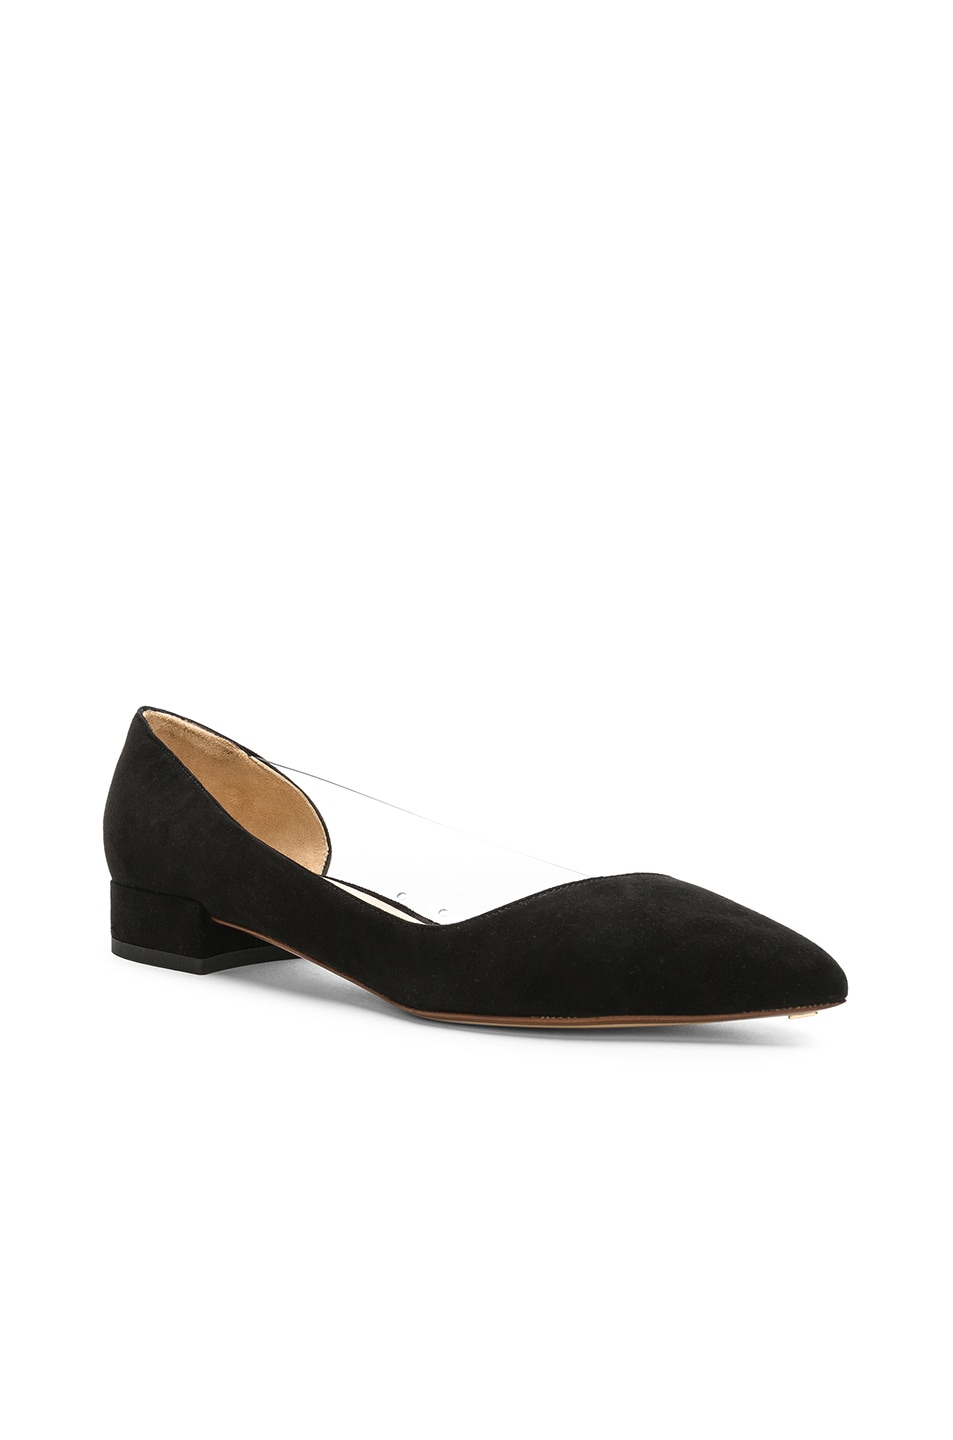 Image 2 of FRANCESCO RUSSO Suede & PVC Flats in Black